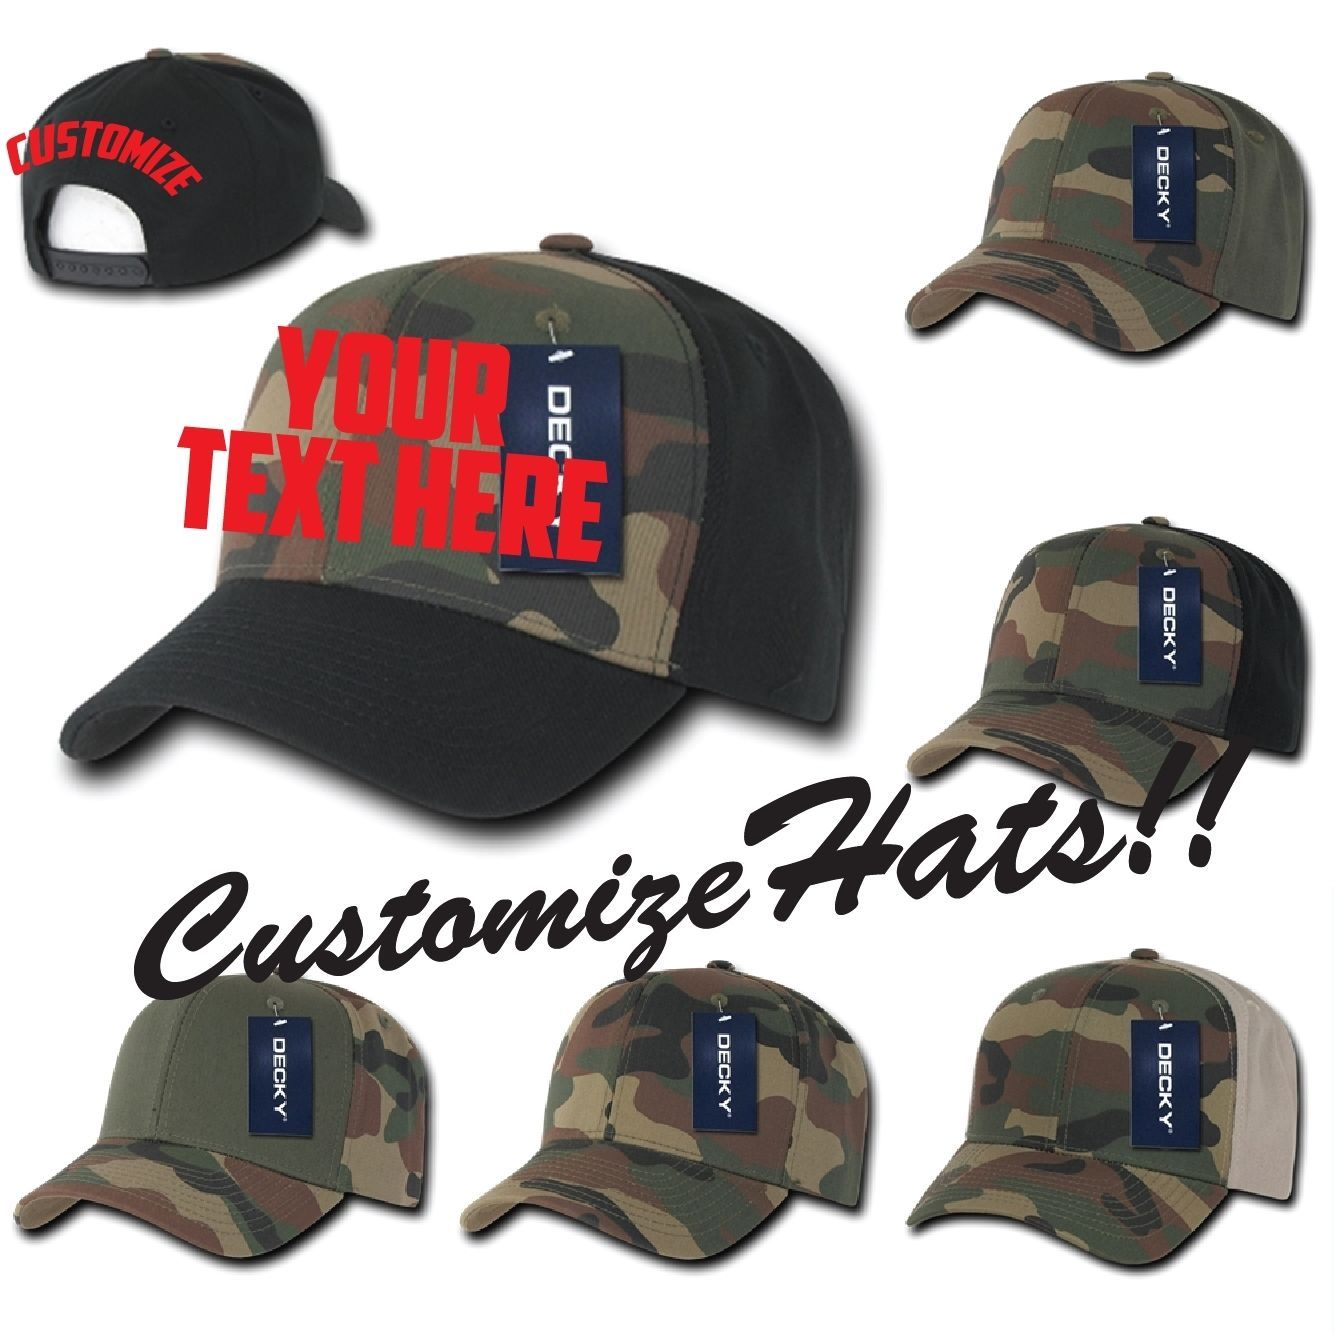 CUSTOM EMBROIDERY Personalized Decky Camo Curved Bill Cap Hat 1048